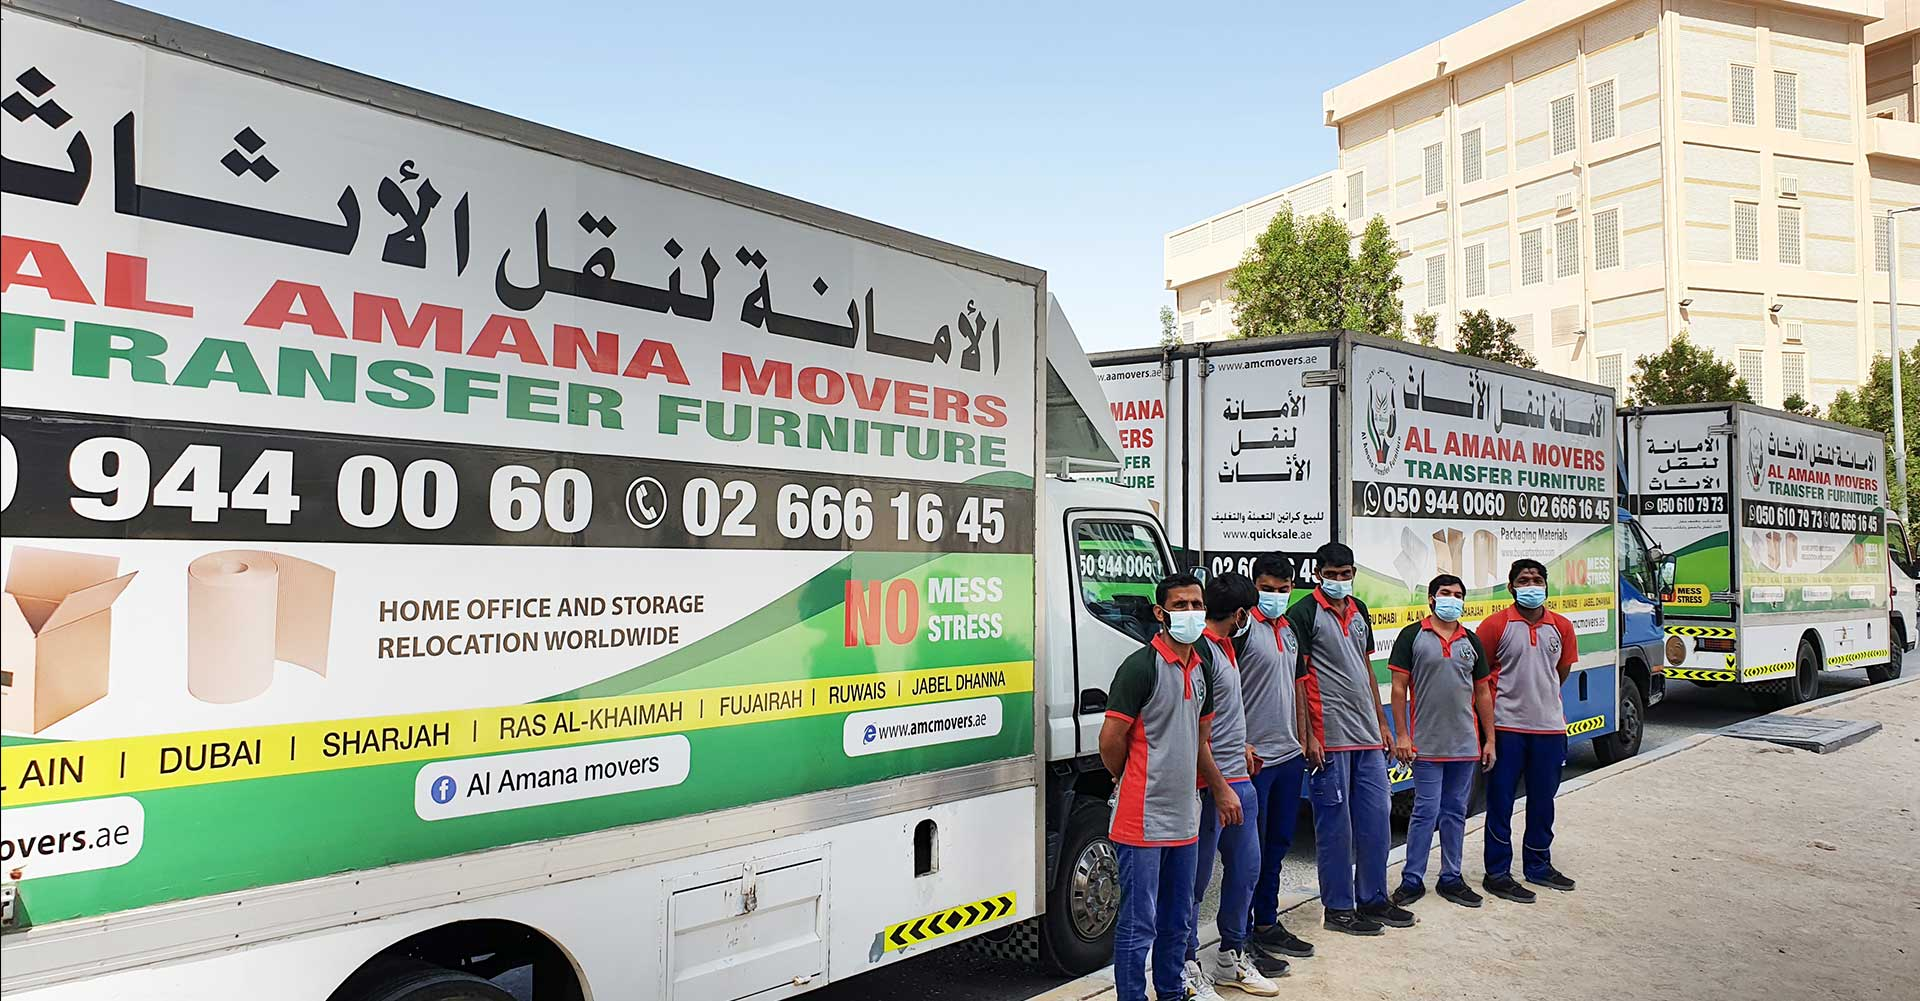 best movers in abu dhabi, movers and packers in abu dhabi, best movers in dubai, best movers in sharjah